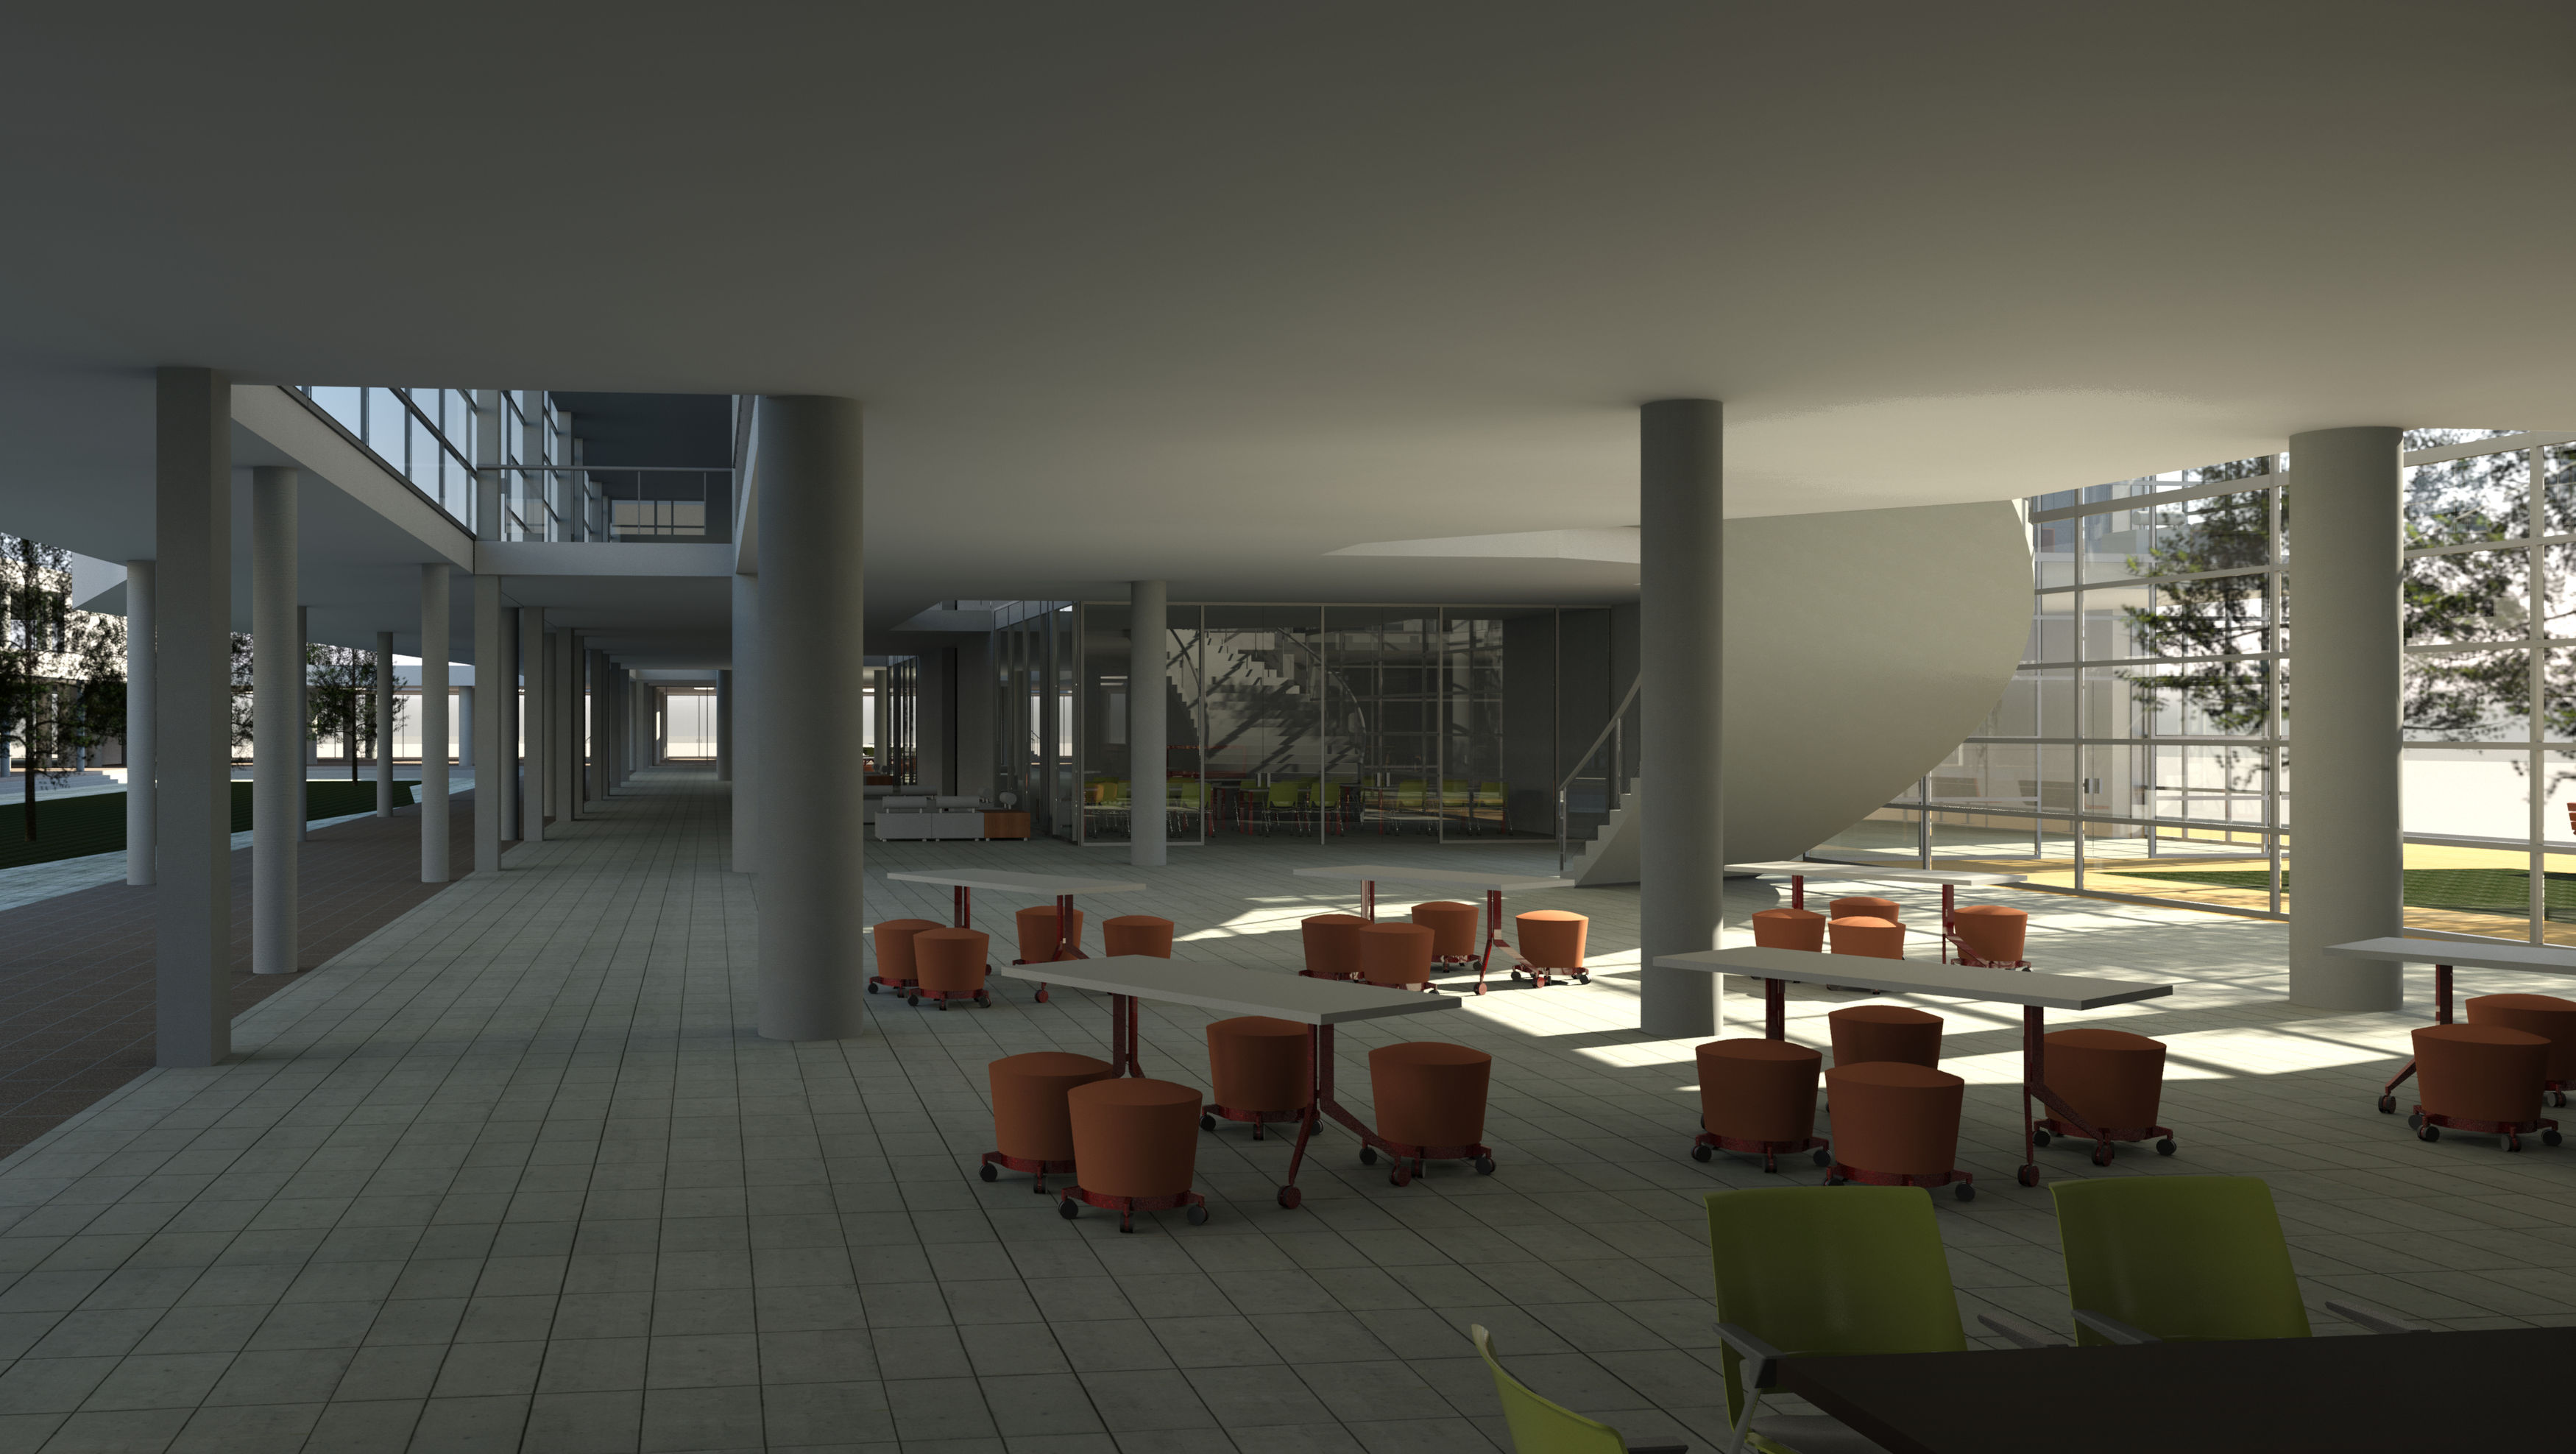 Colegio-rvt-2016-may-29-11-04-51am-000-interior-2-3500-3500